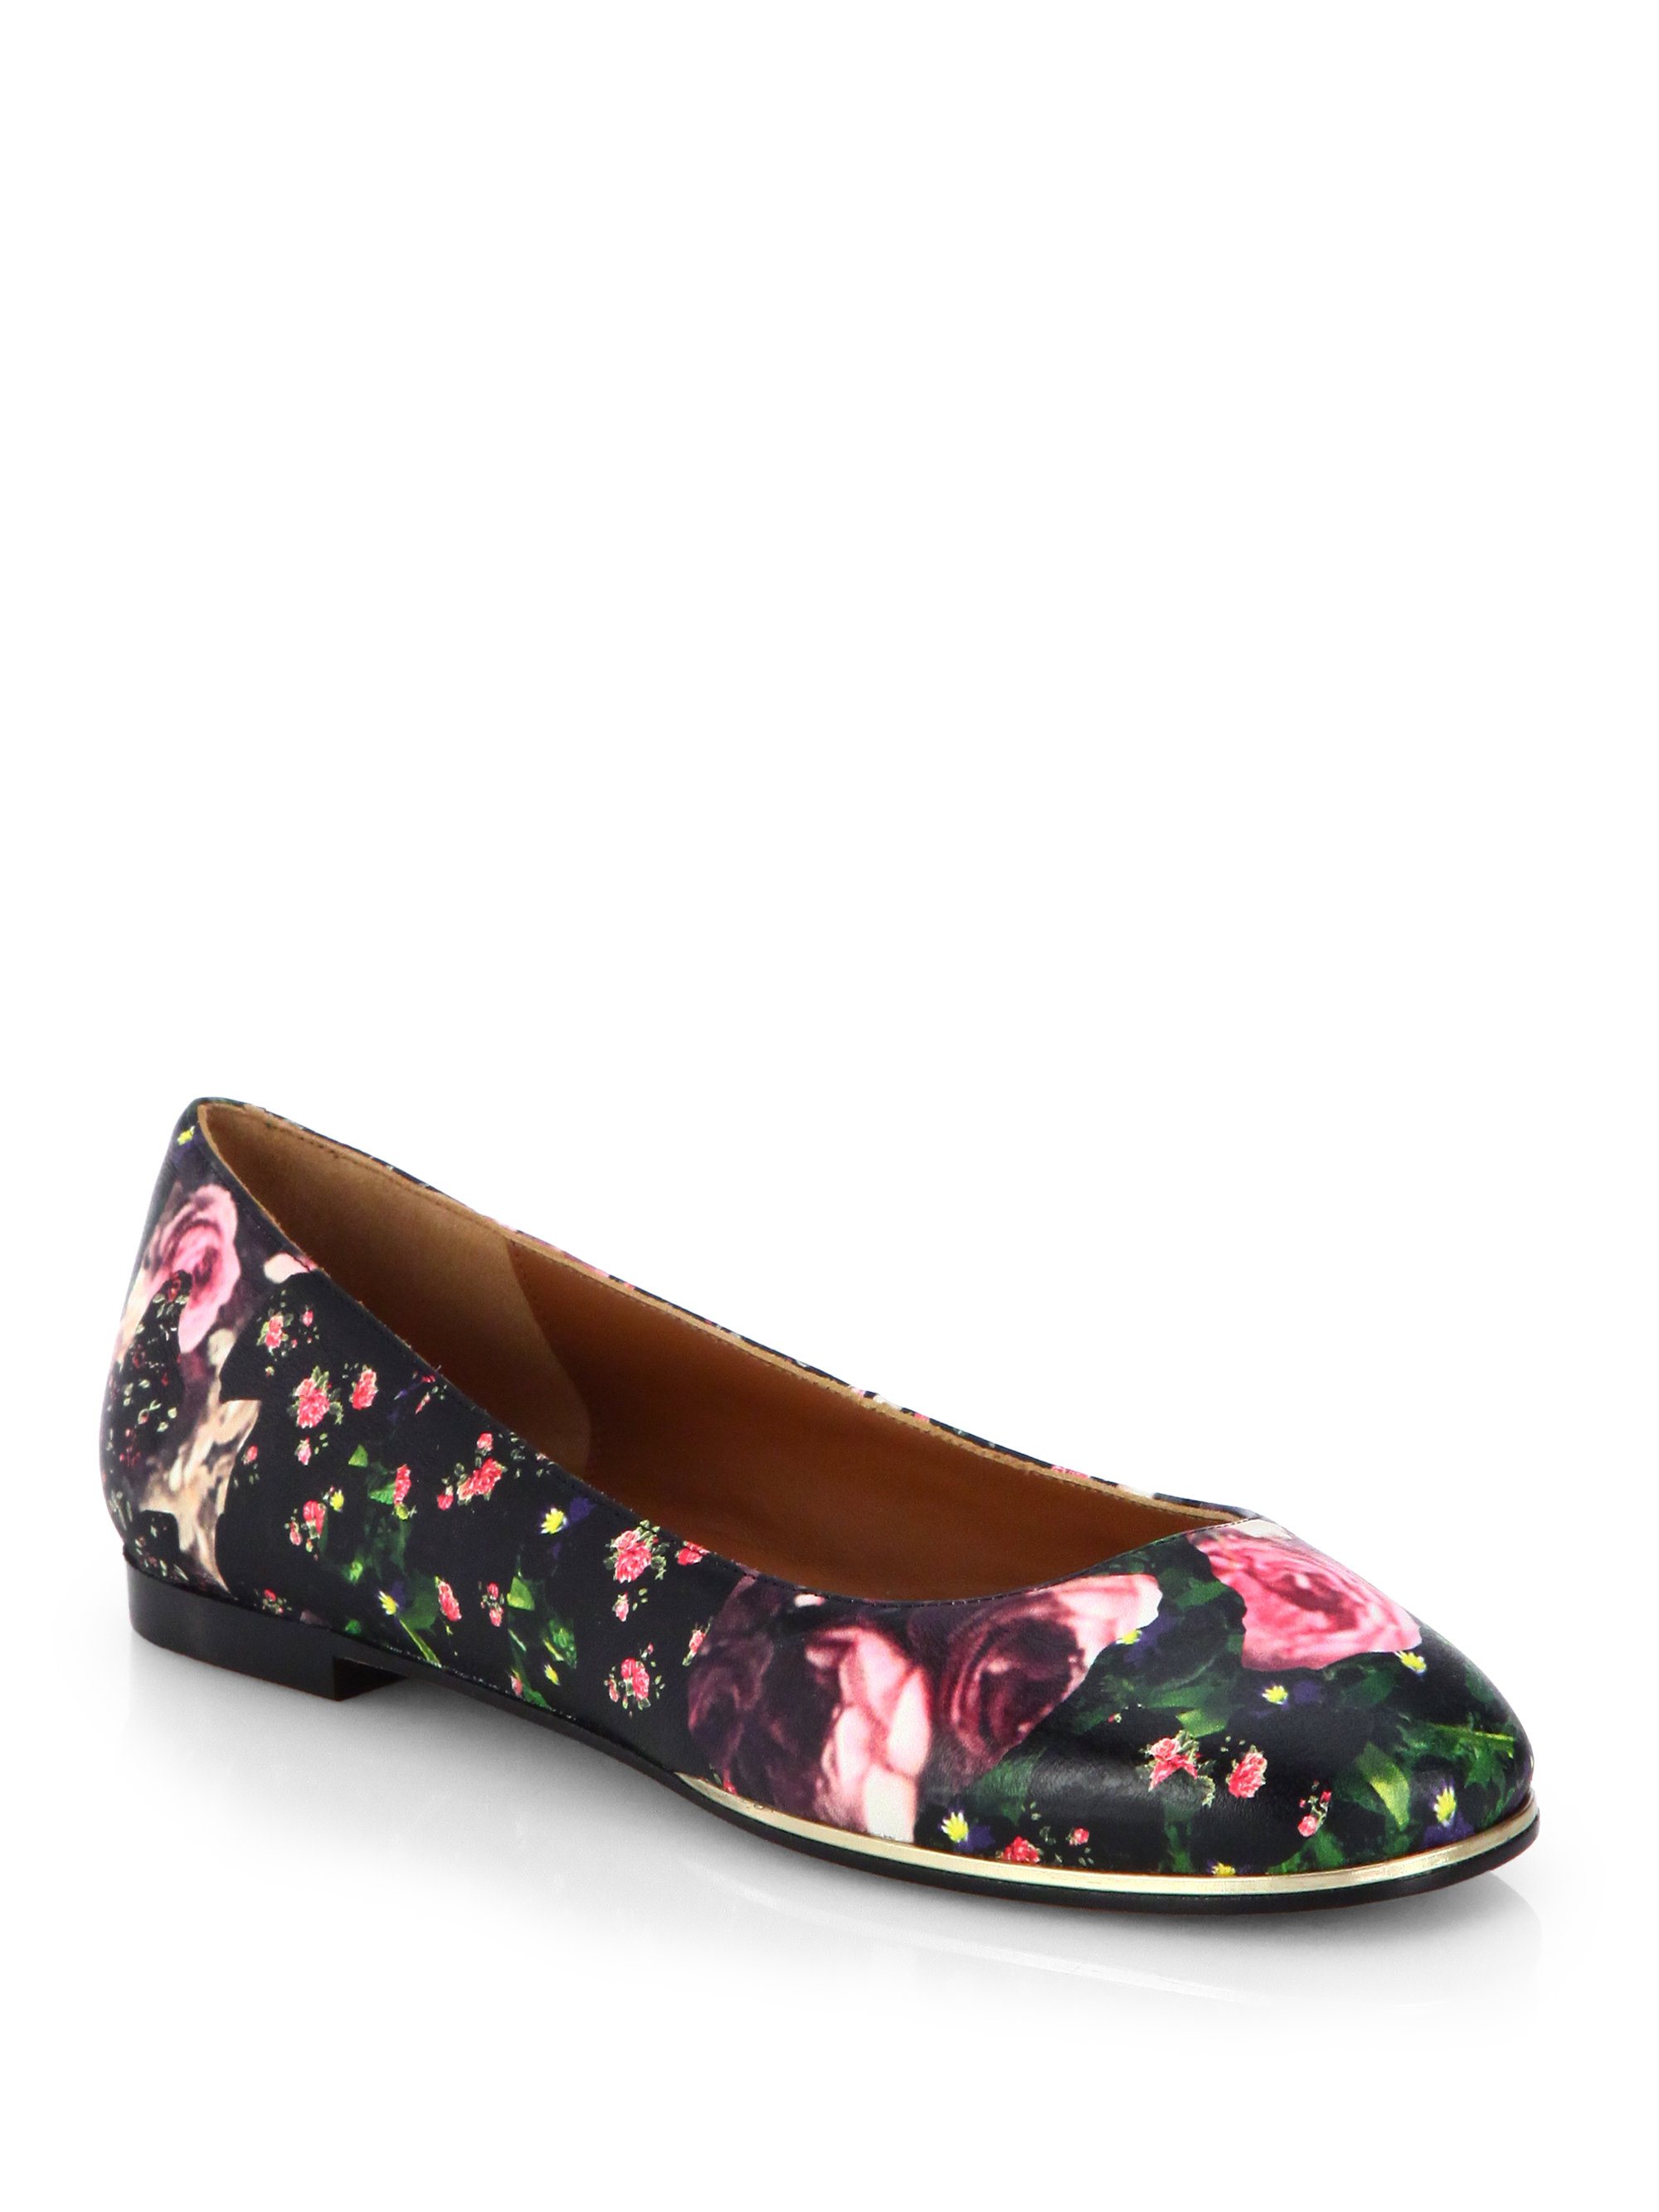 Givenchy Floral Ballet Flats prices cheap price pre order for sale explore online 5lRnbG